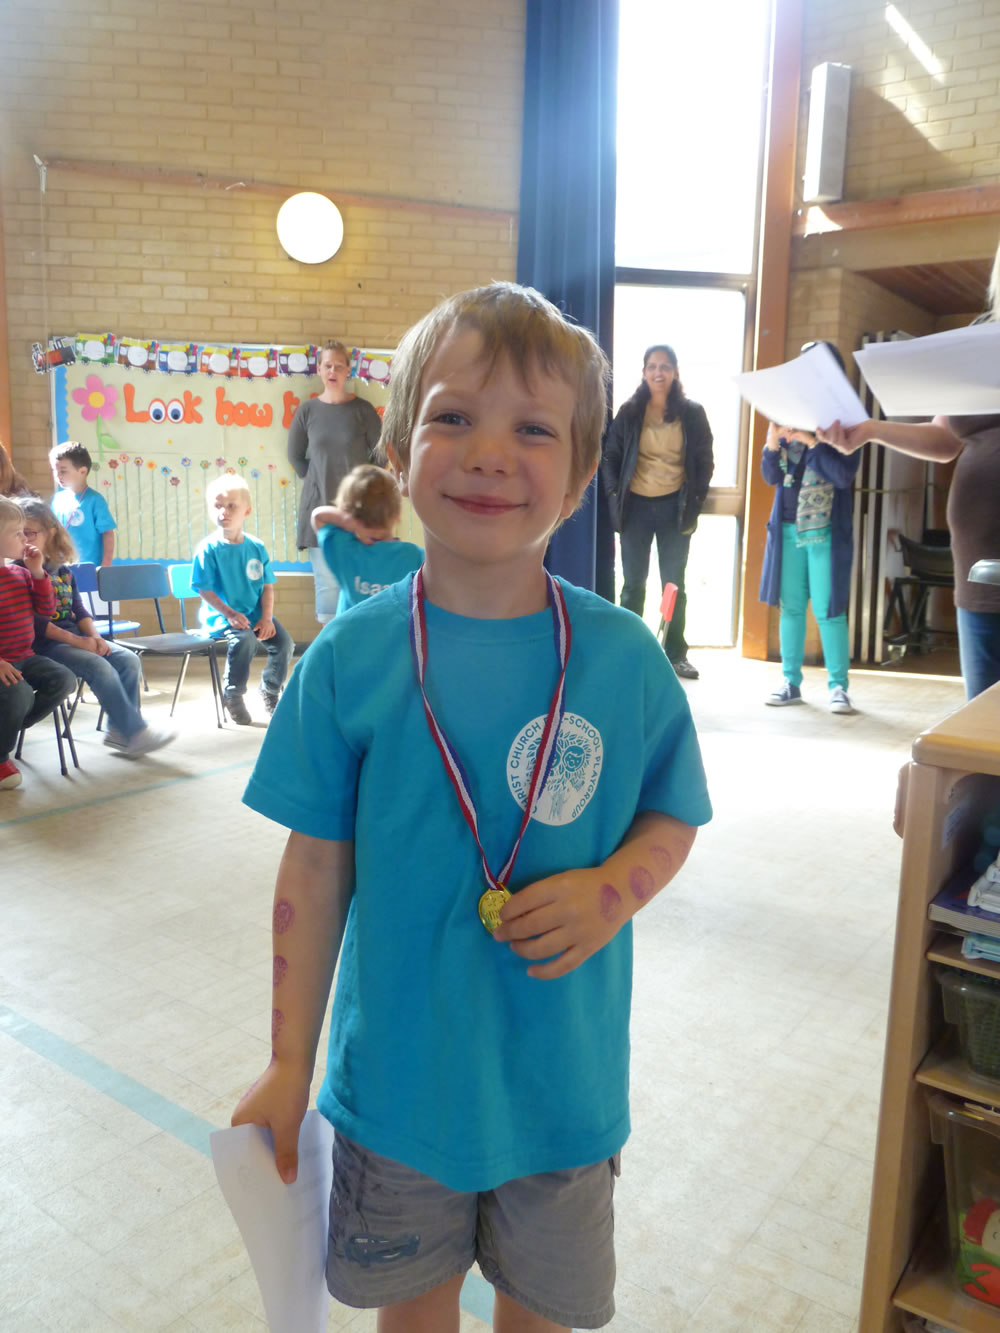 Christ Church Pre-School Playgroup - On your bike fundraising 2015